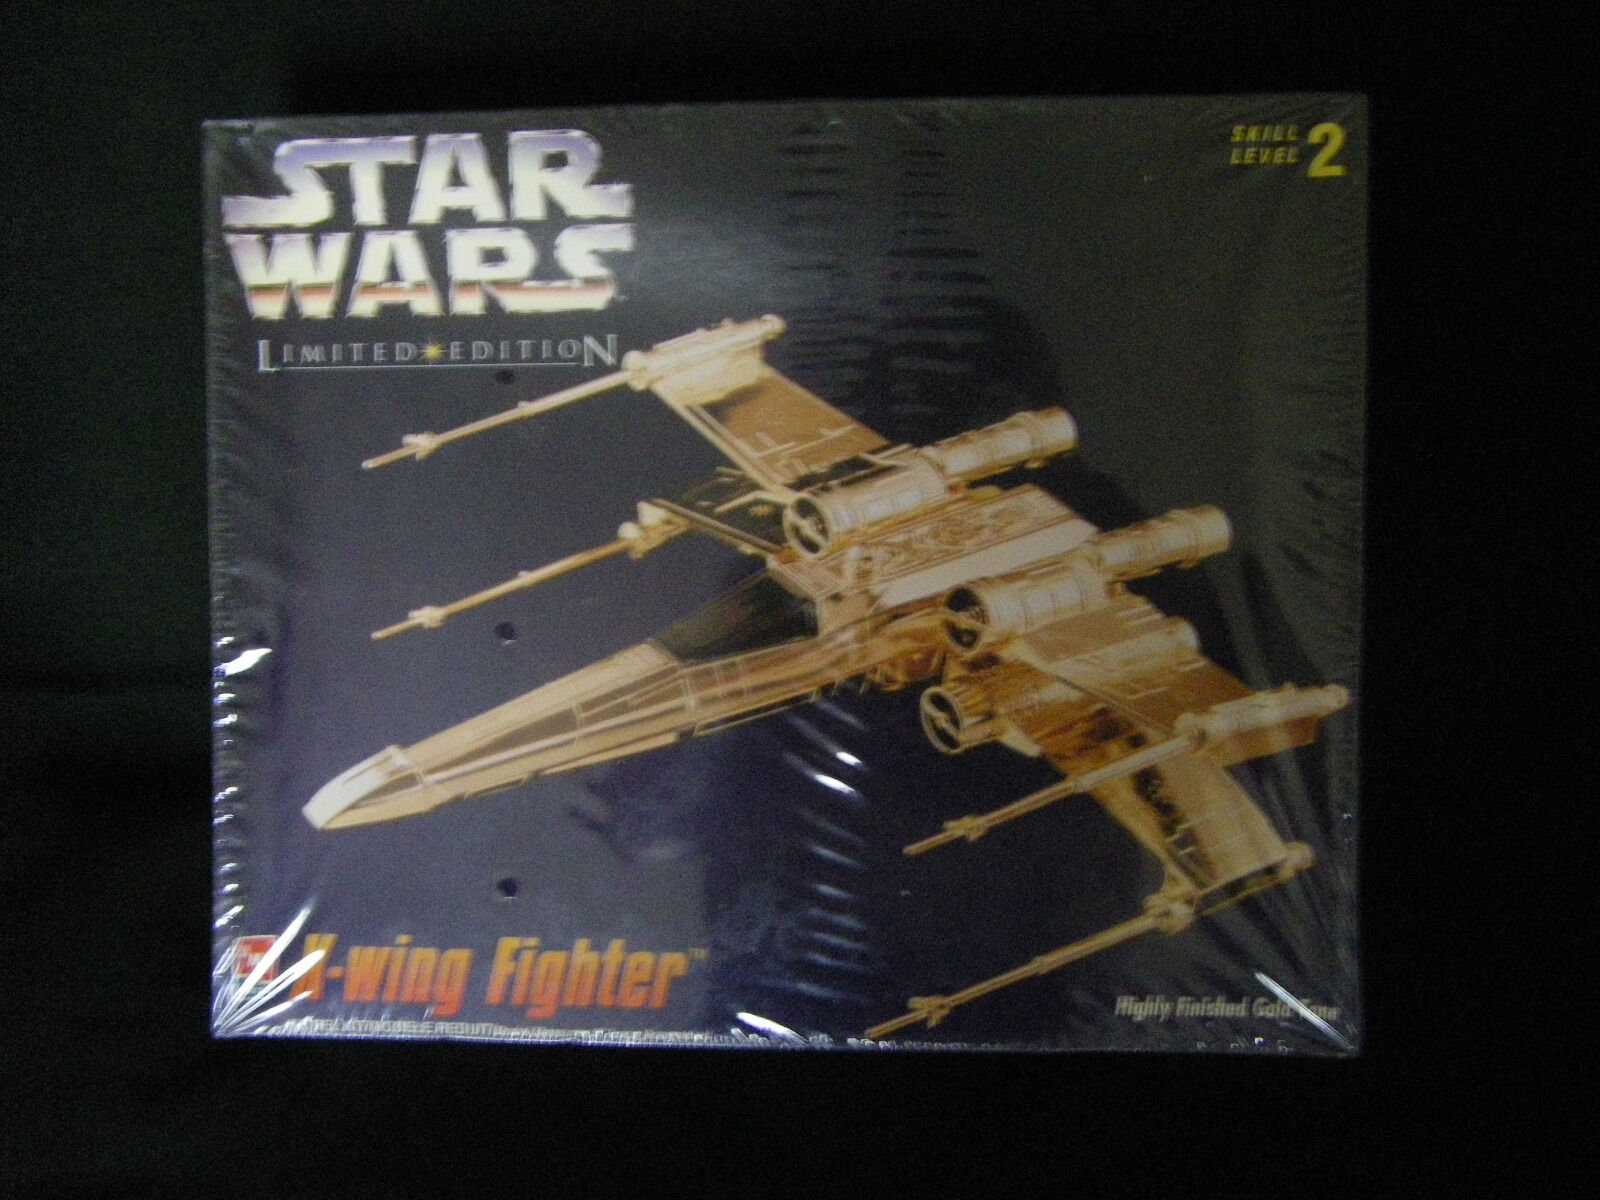 Star Wars X-Wing Fighter AMT Highly Finished Gold Tone